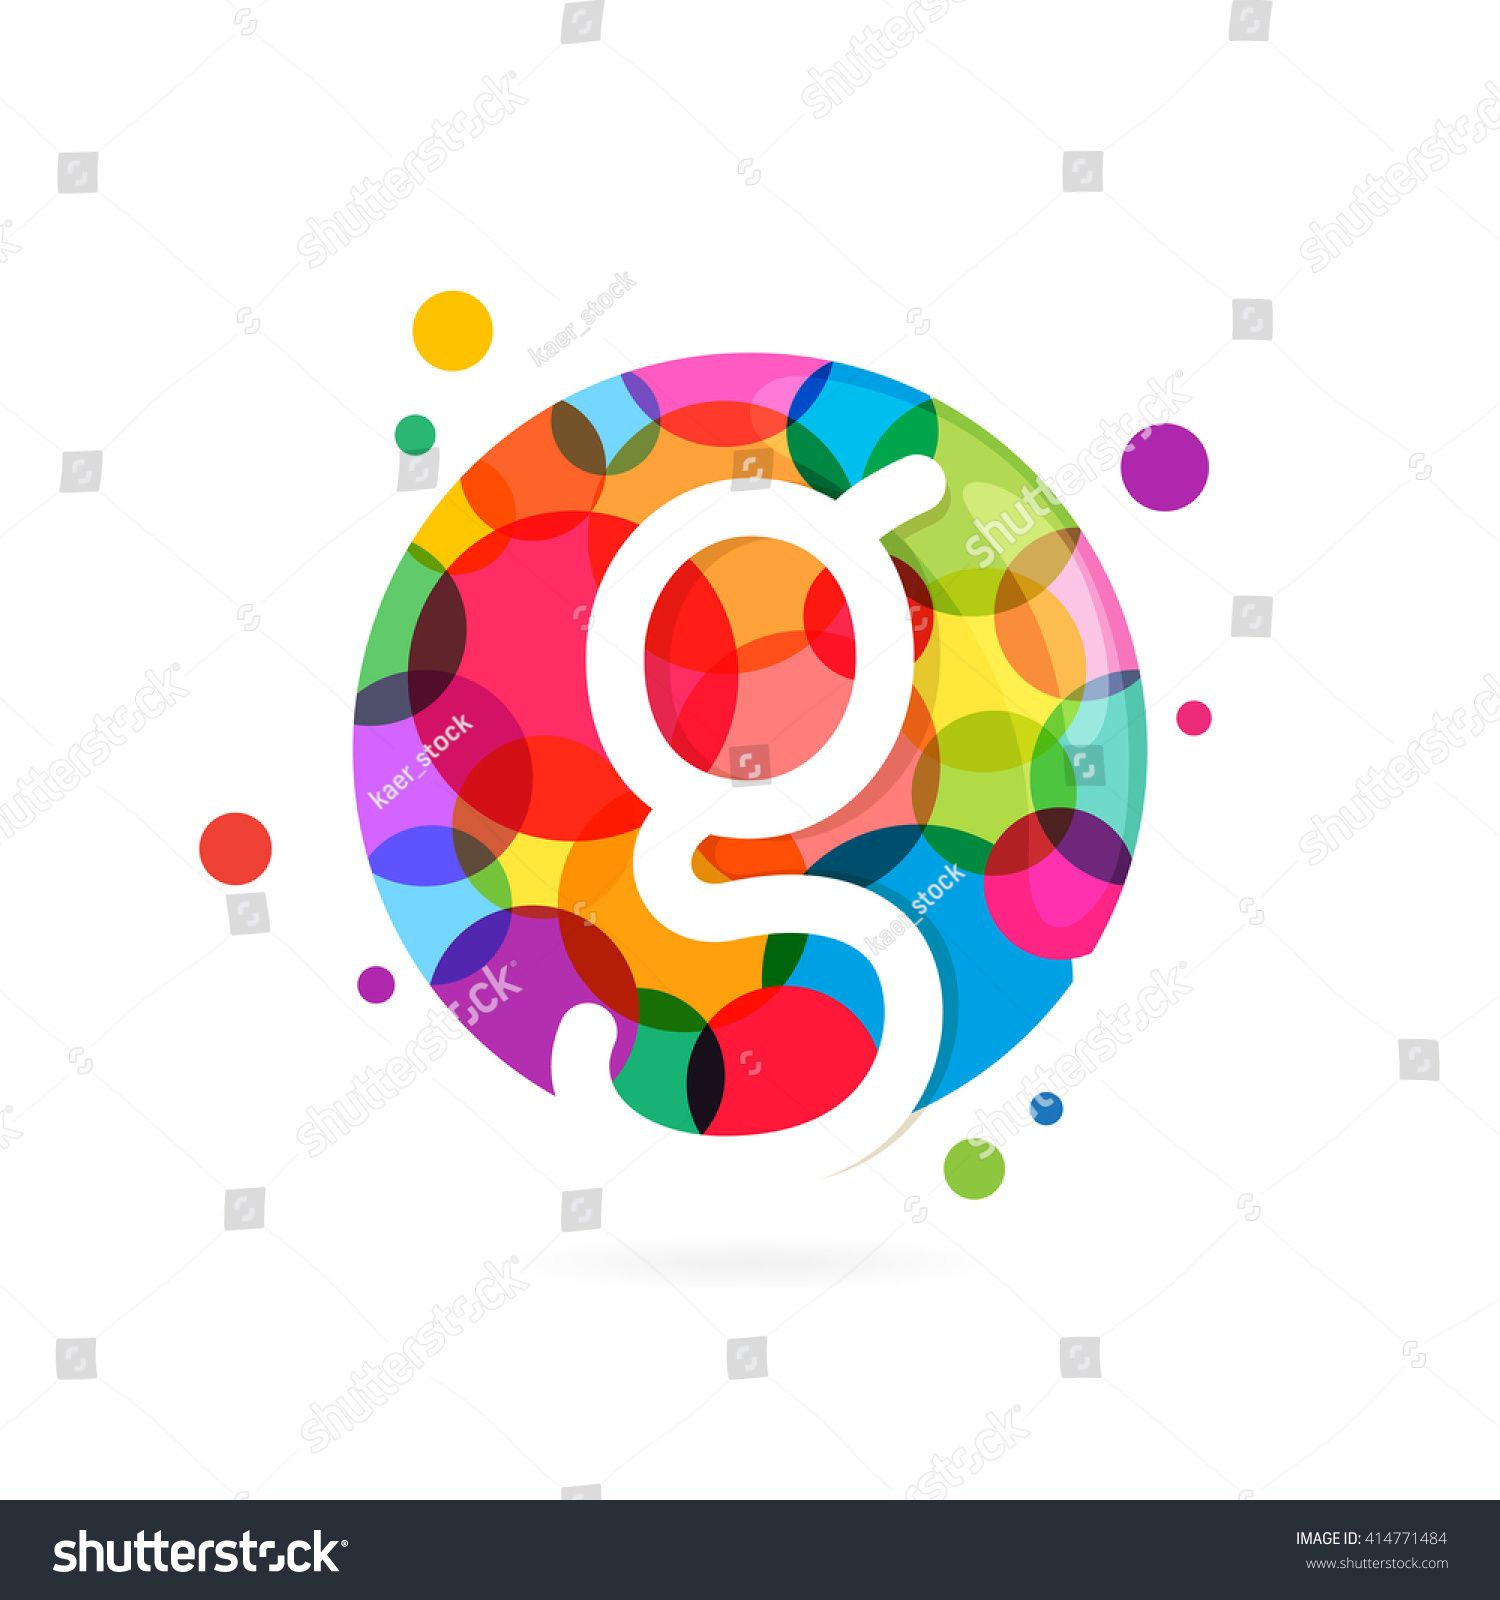 G letter logo in circle with rainbow dots Font style vector design